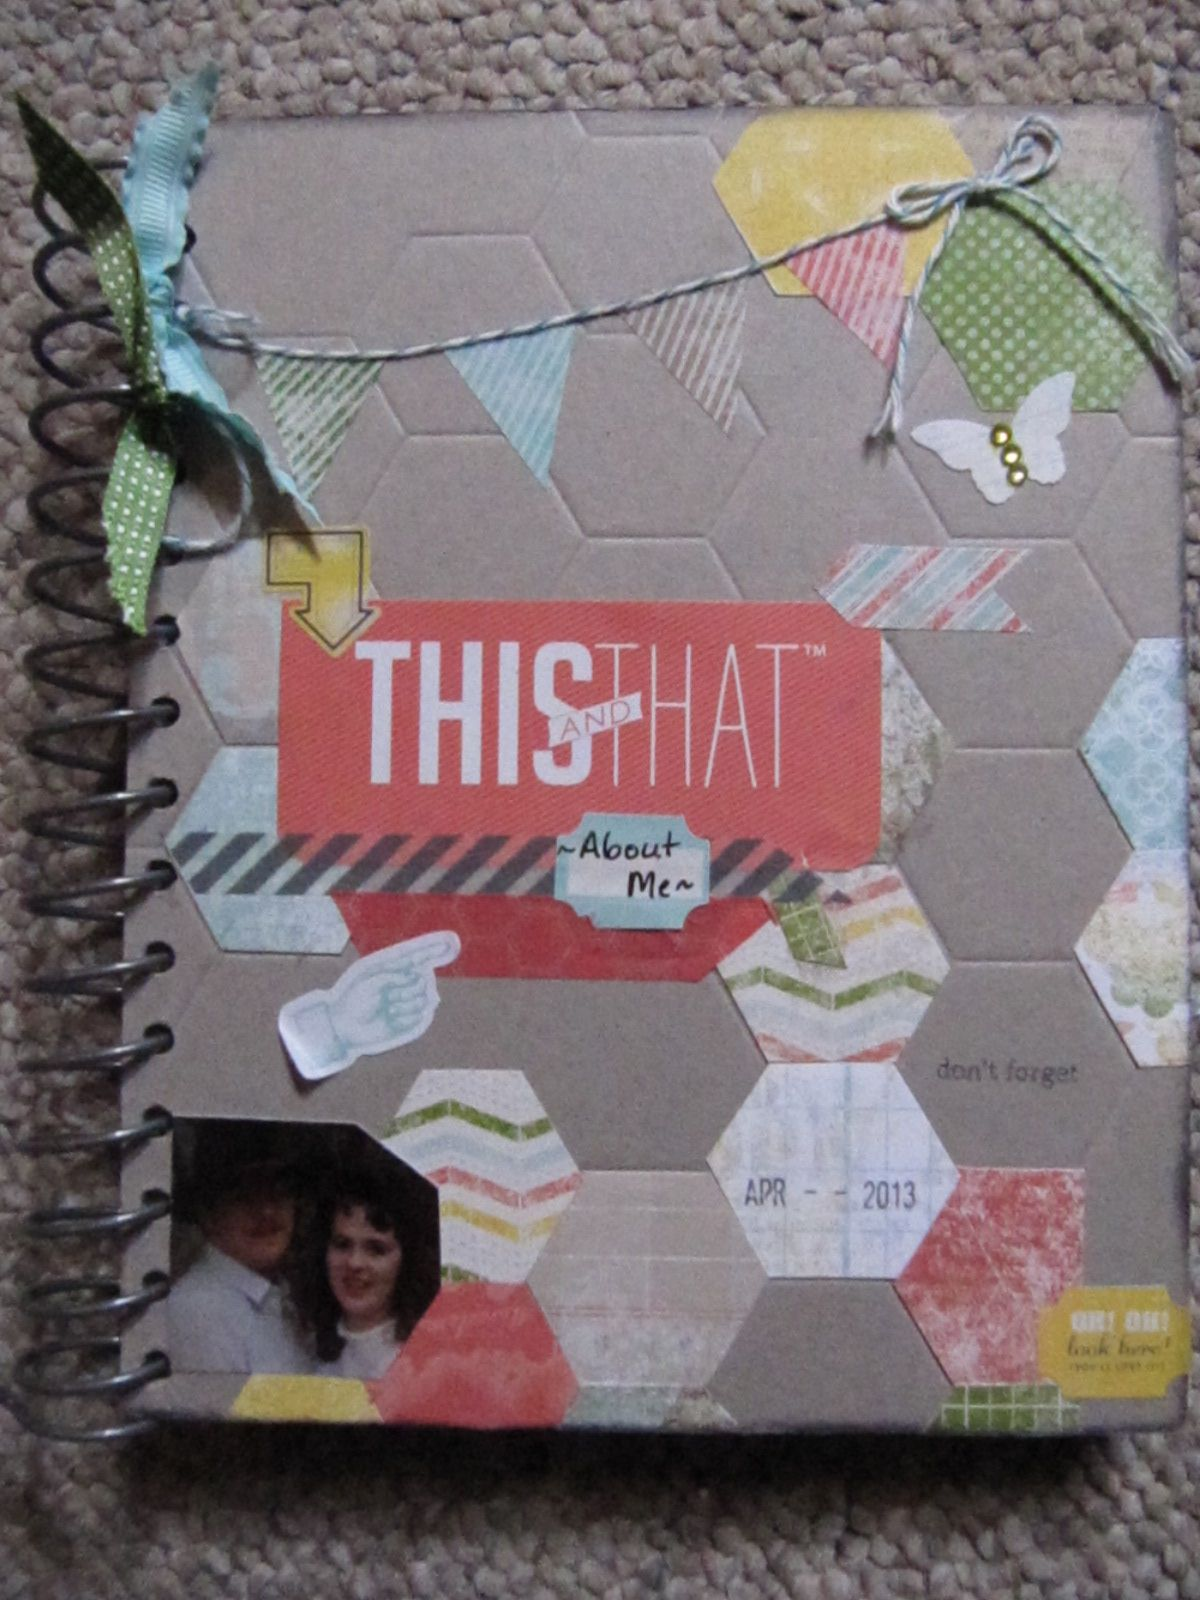 My Stampin' Up! This & That Epic Day Journal to keep track of my favorite photos, inspirational quotes & Scriptures.